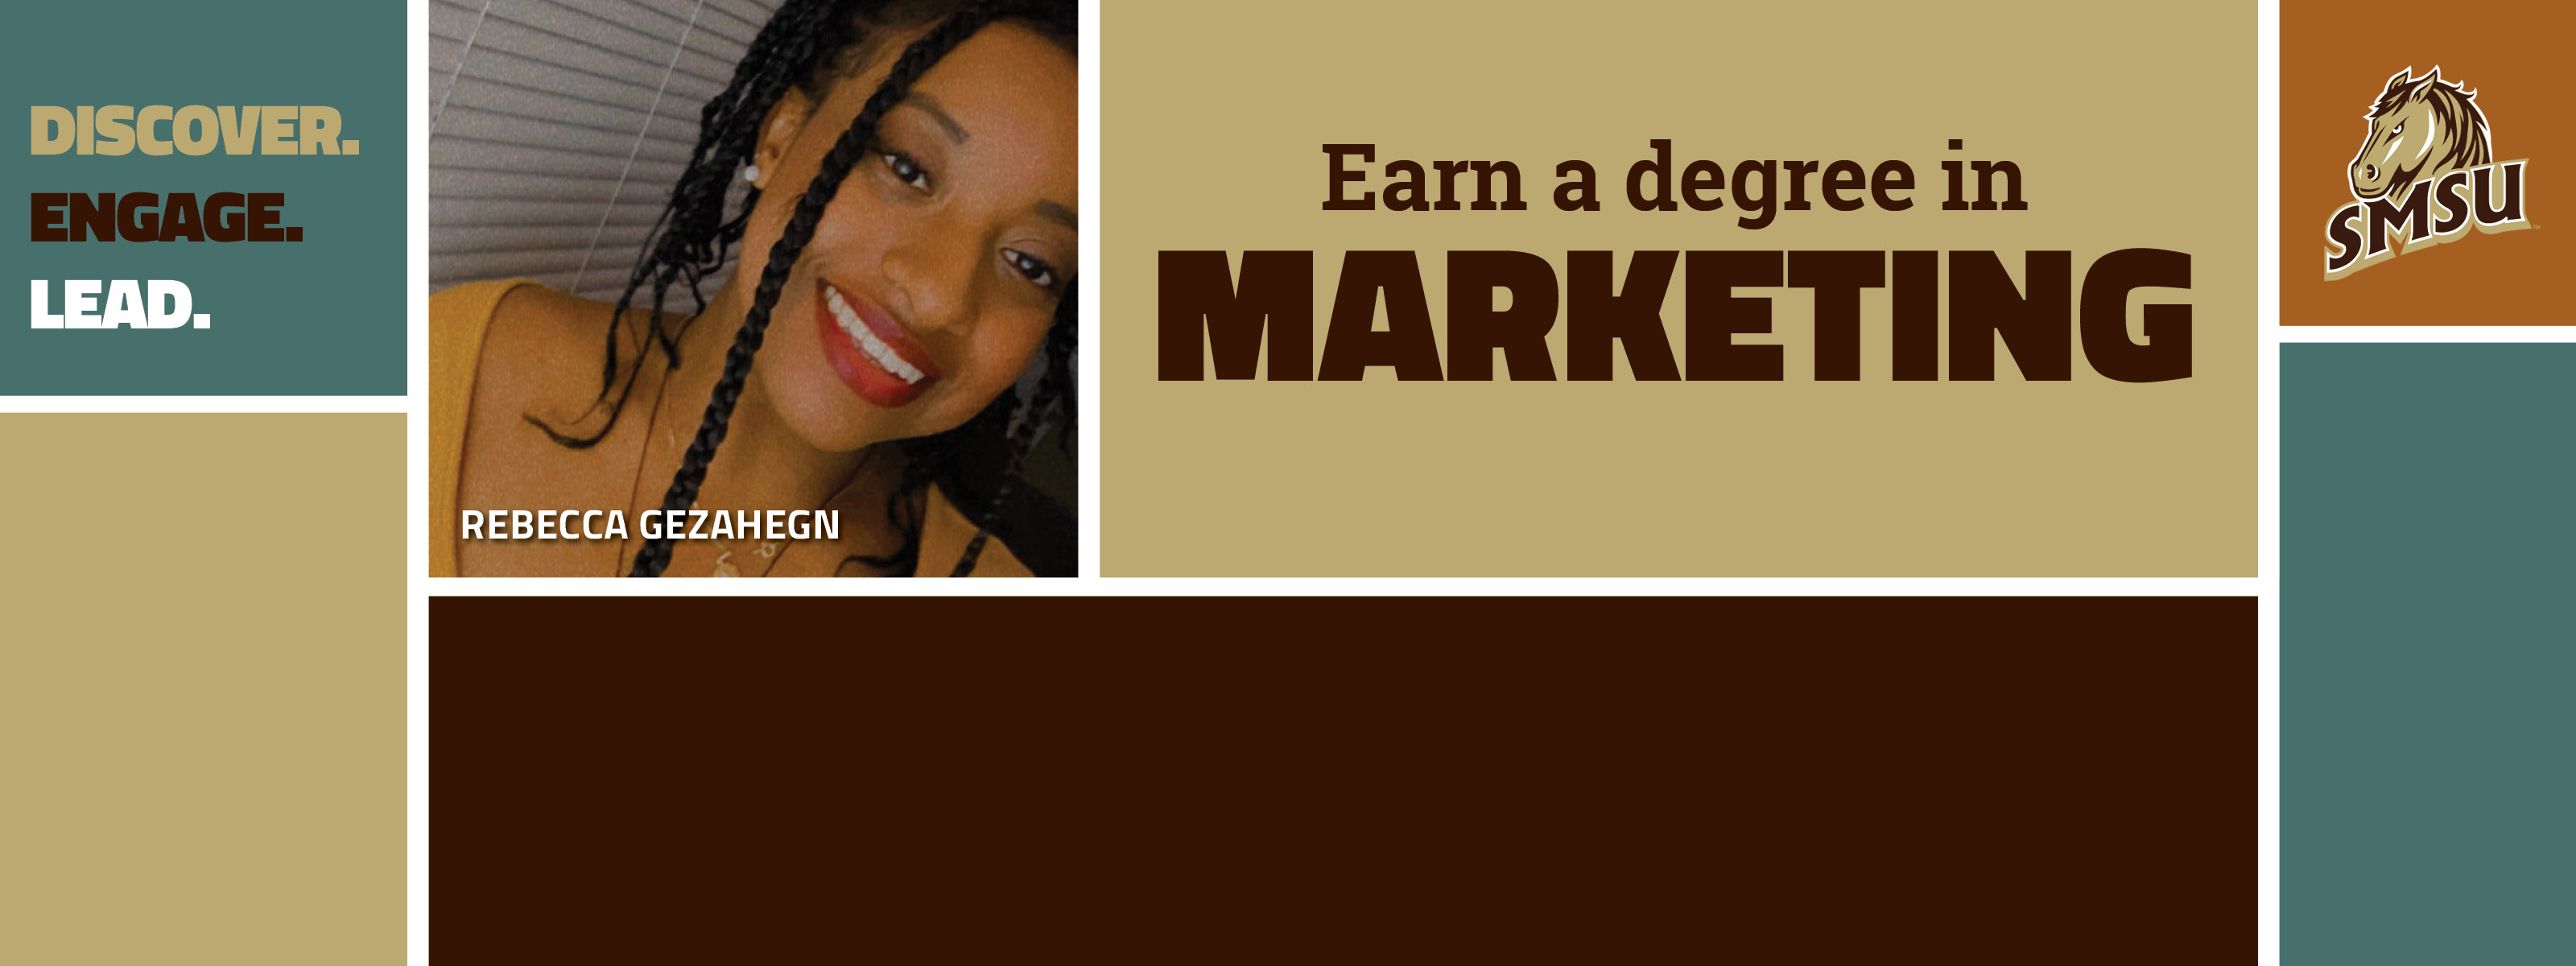 Earn A Degree In Marketing - Discover. Engage. Lead.